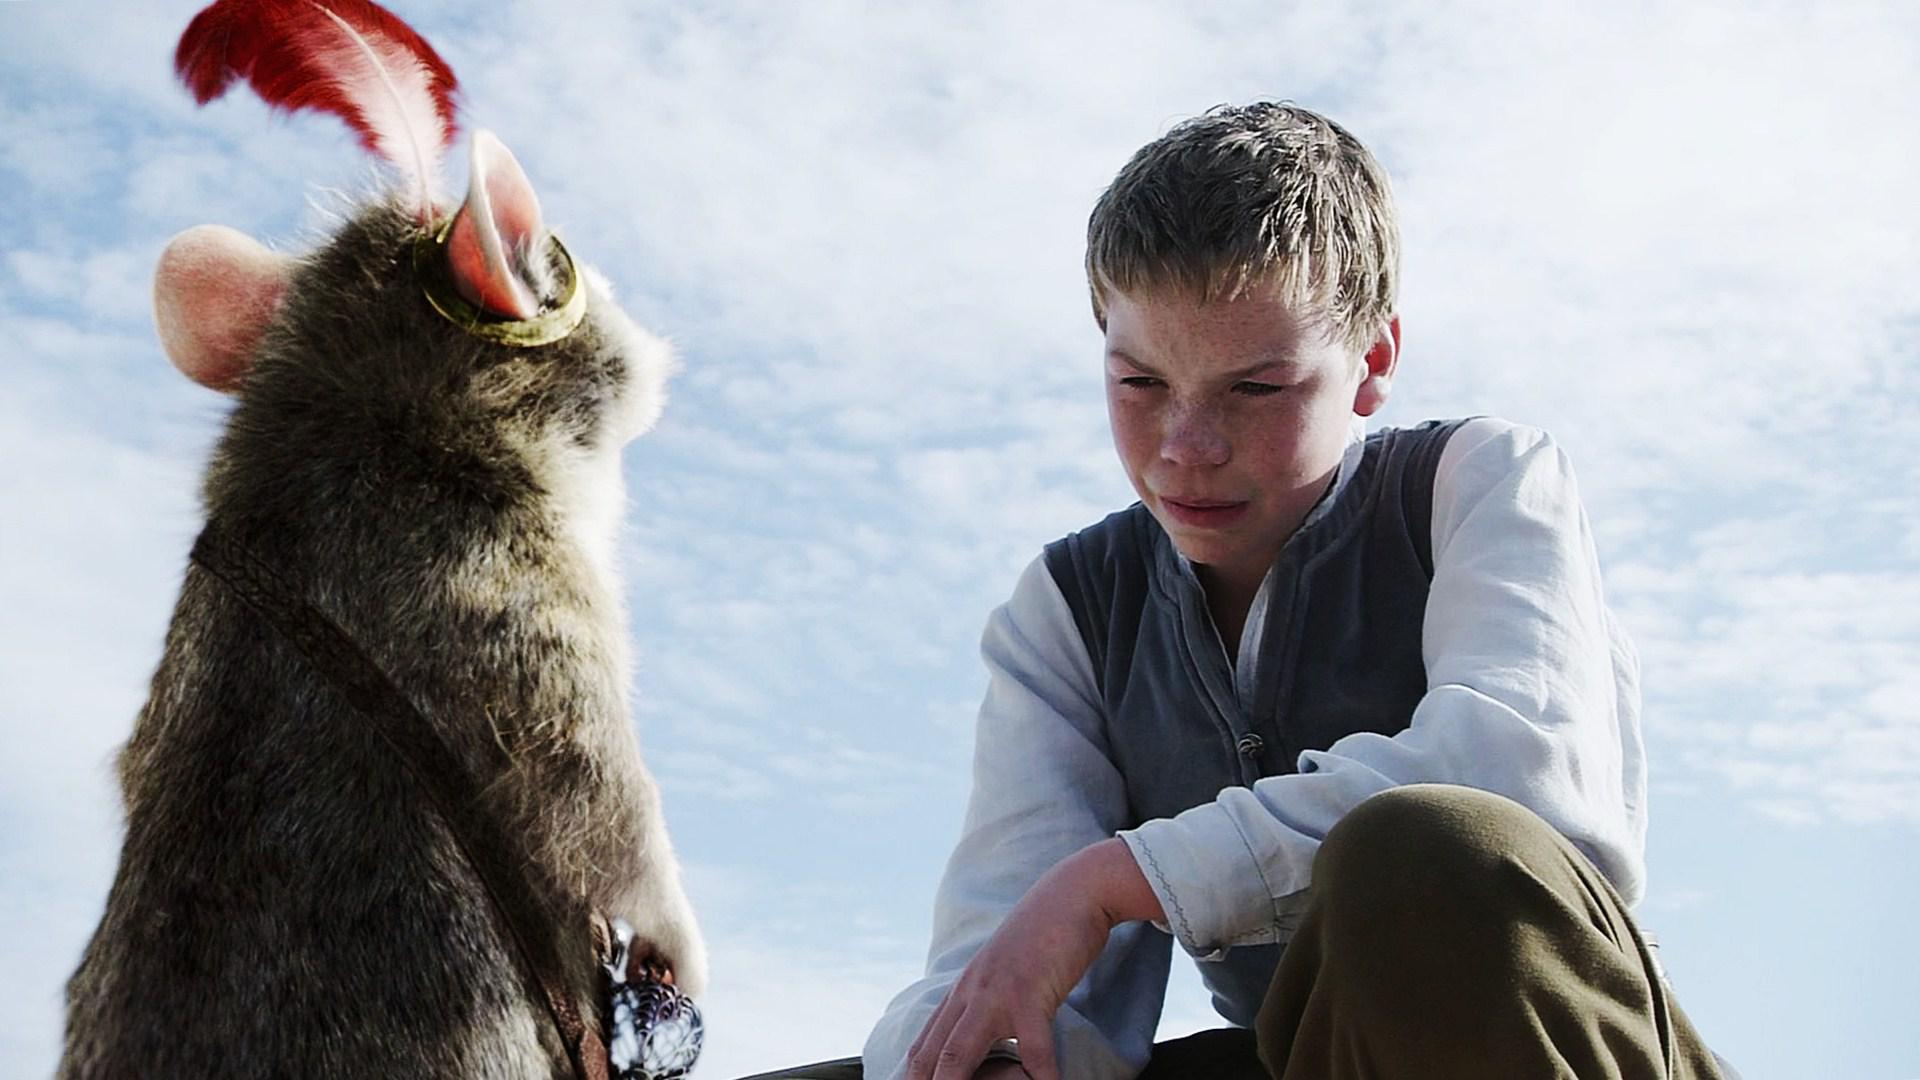 HD Will Poulter Narnia Wallpaper Download   140108 1920x1080